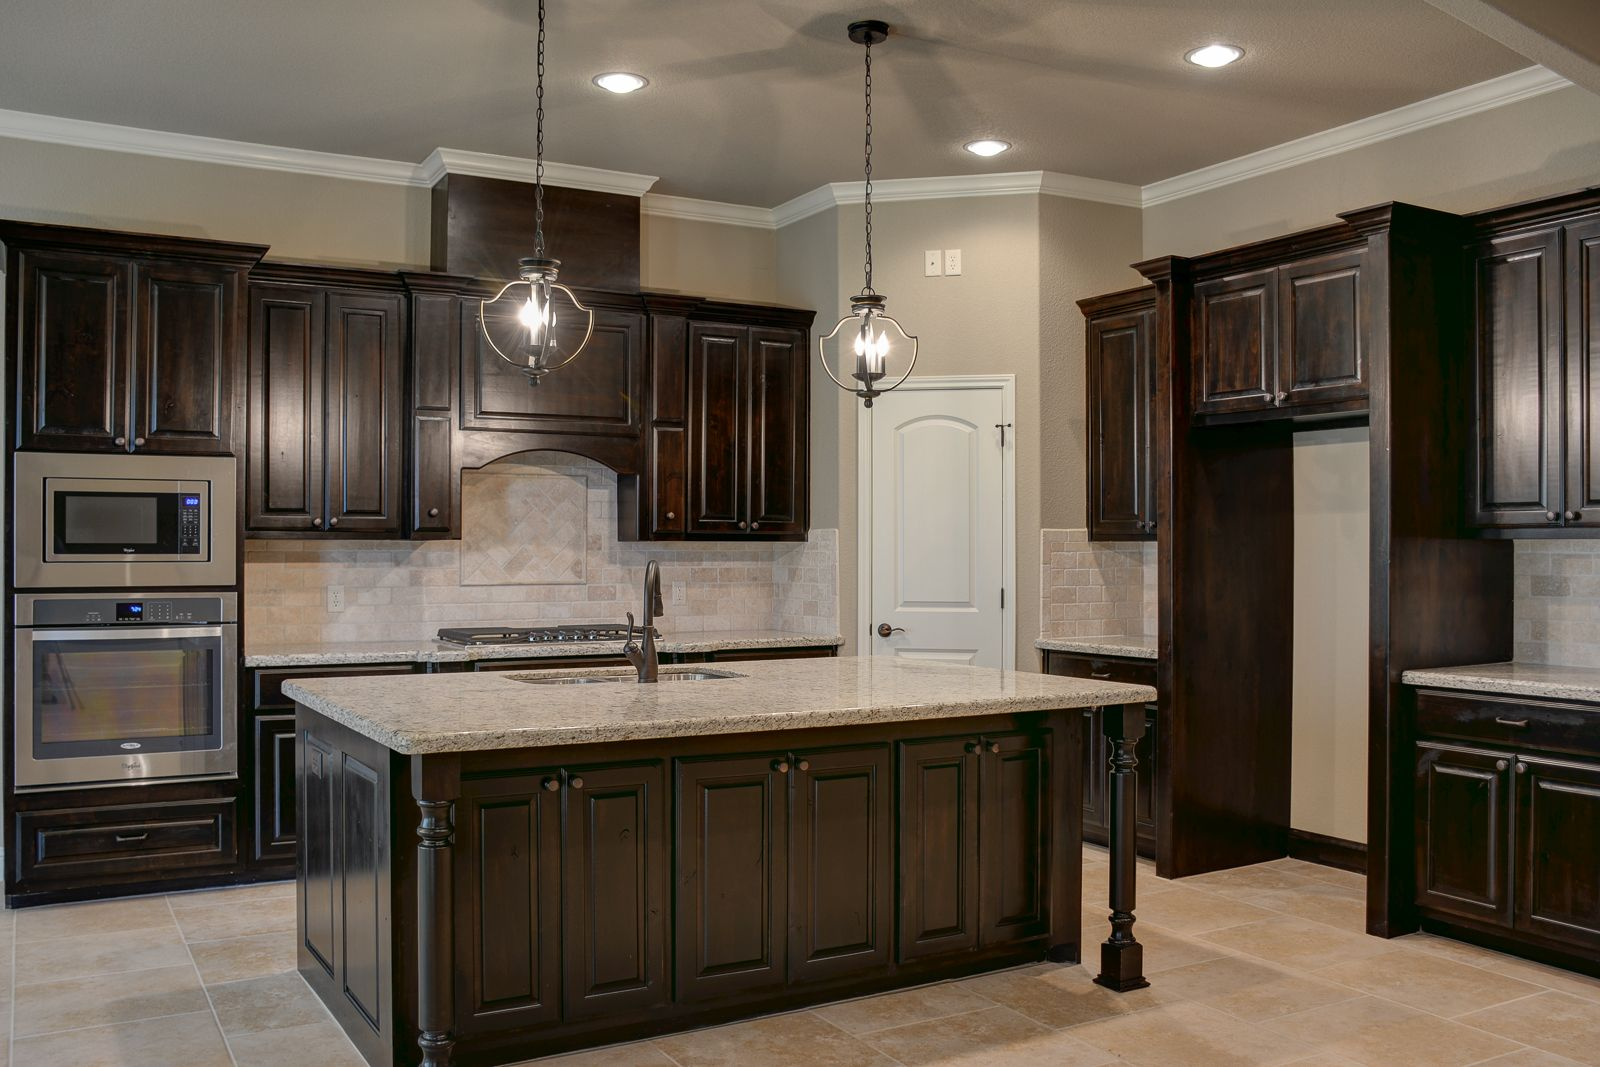 Black Walnut Stained Knotty Alder Cabinets Alder Kitchen Cabinets Walnut Kitchen Cabinets Dark Kitchen Cabinets